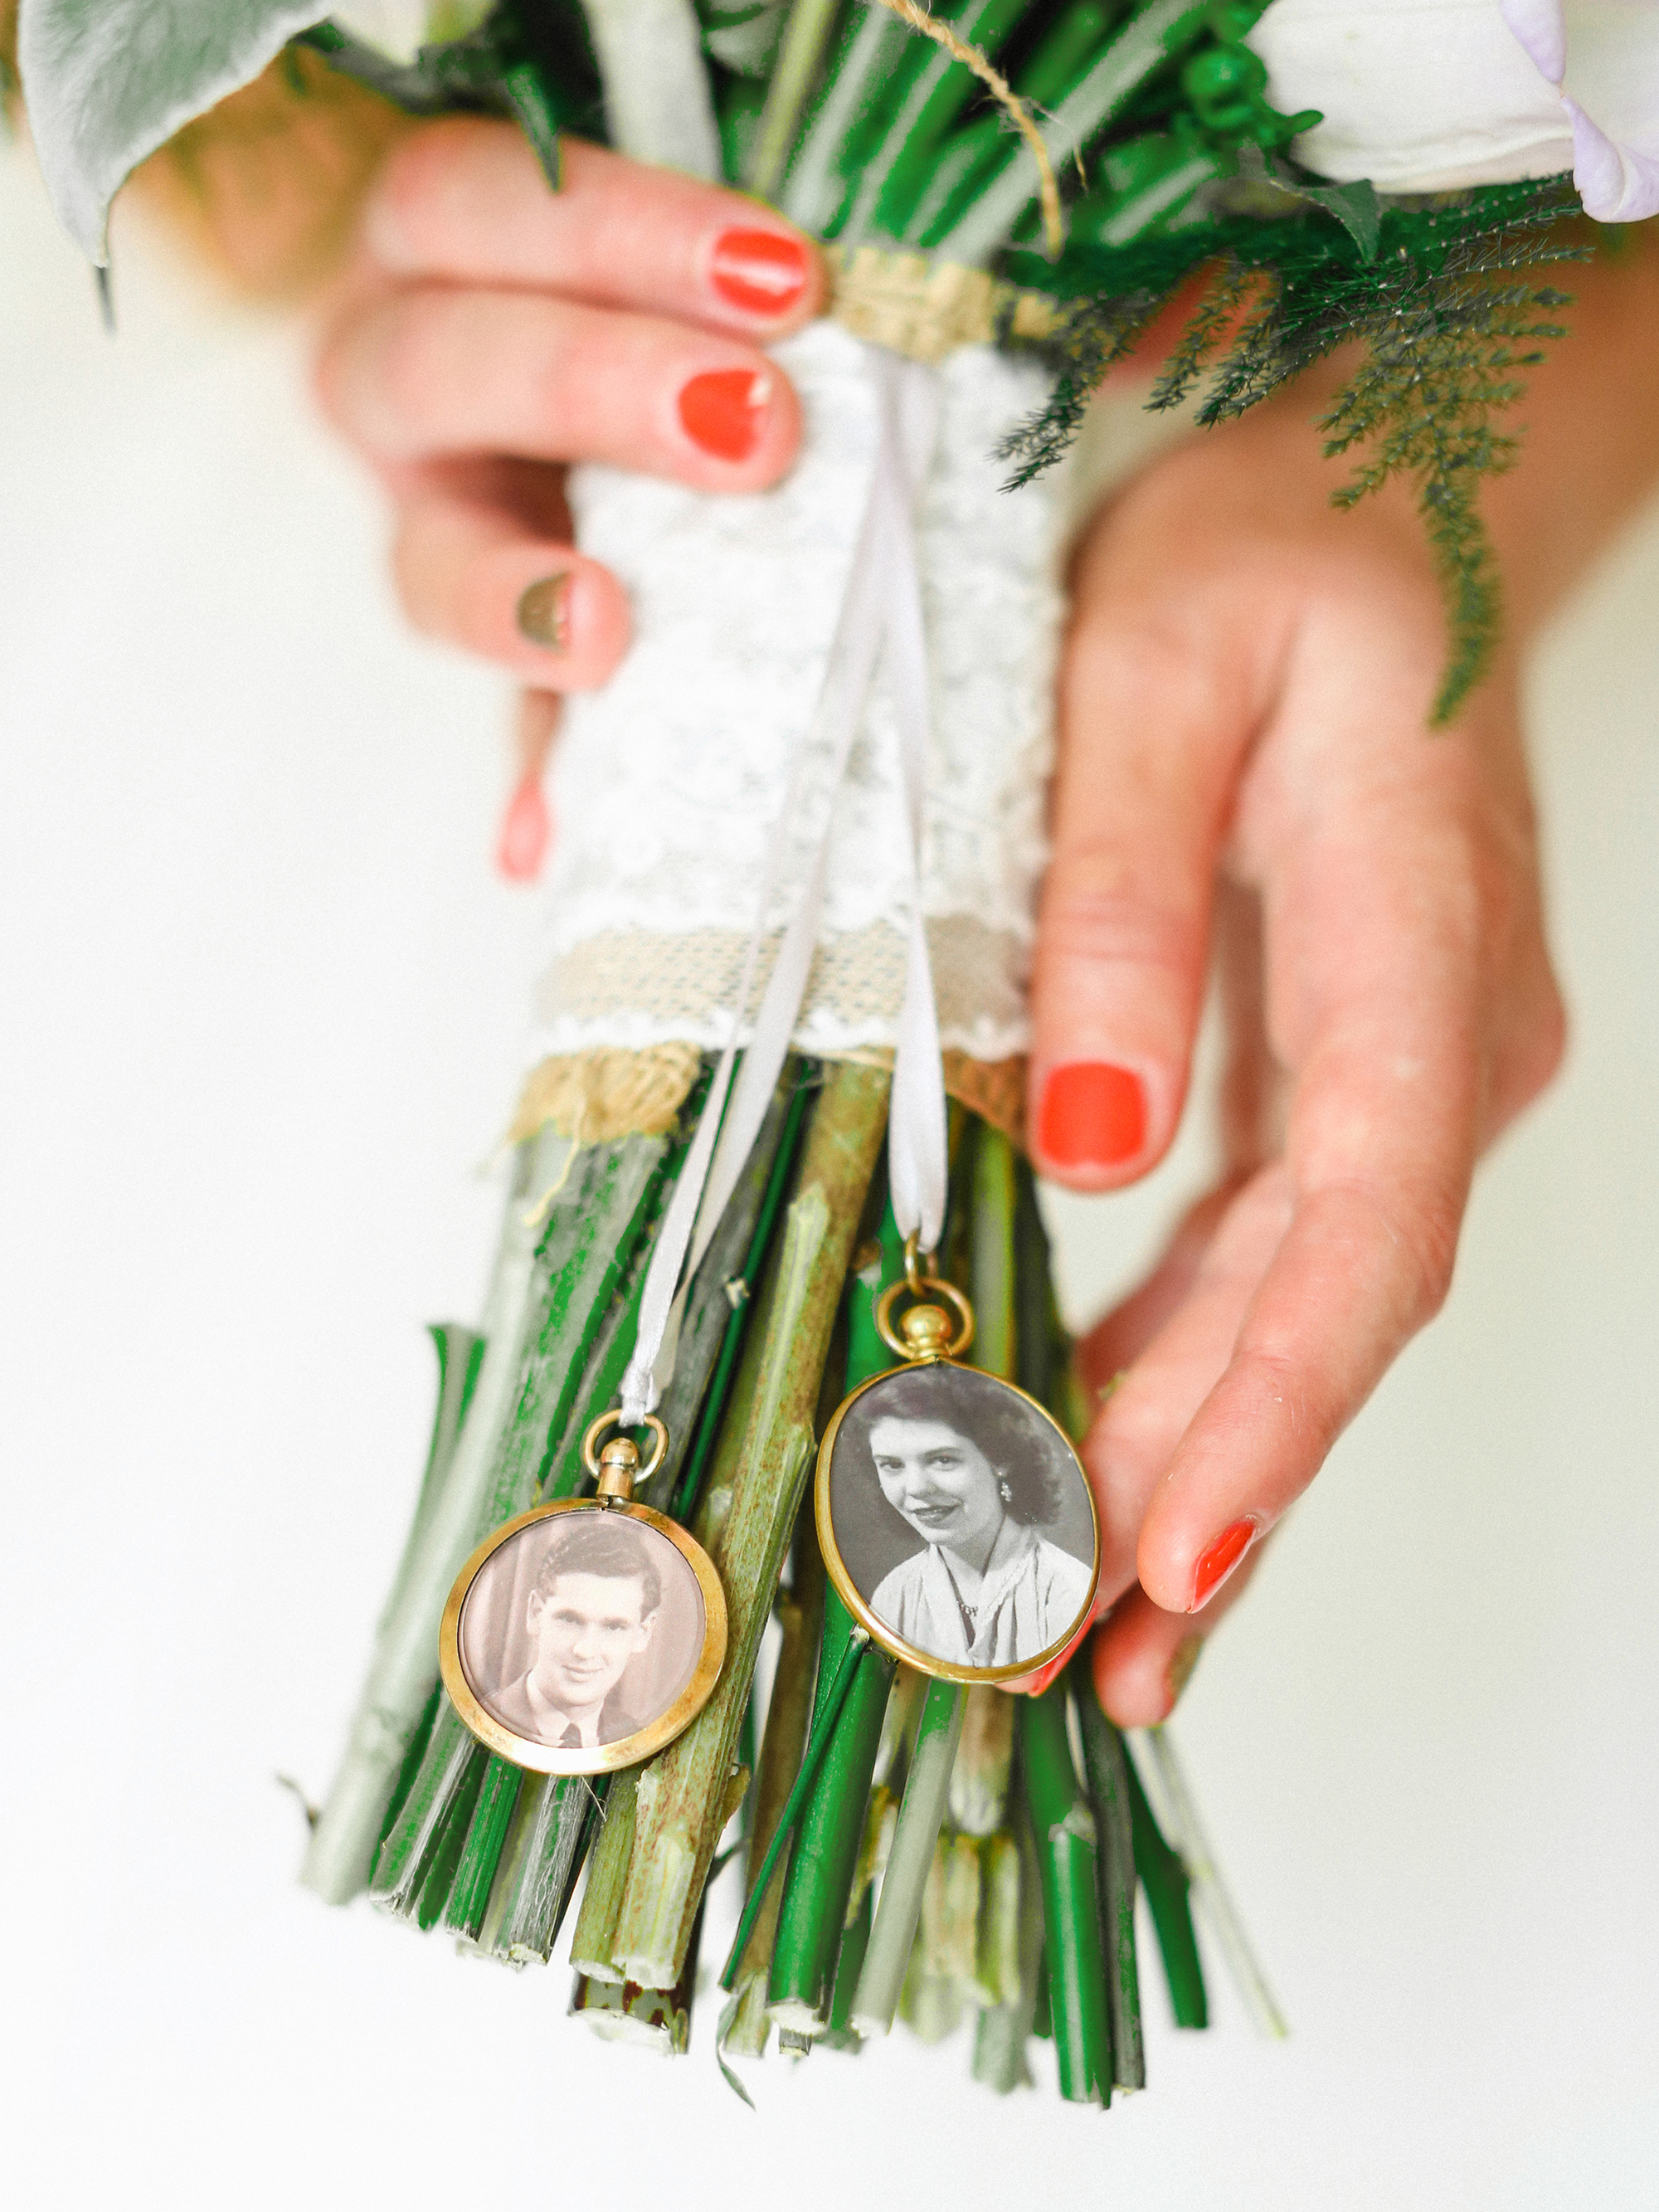 hanging family photo bouquet charms